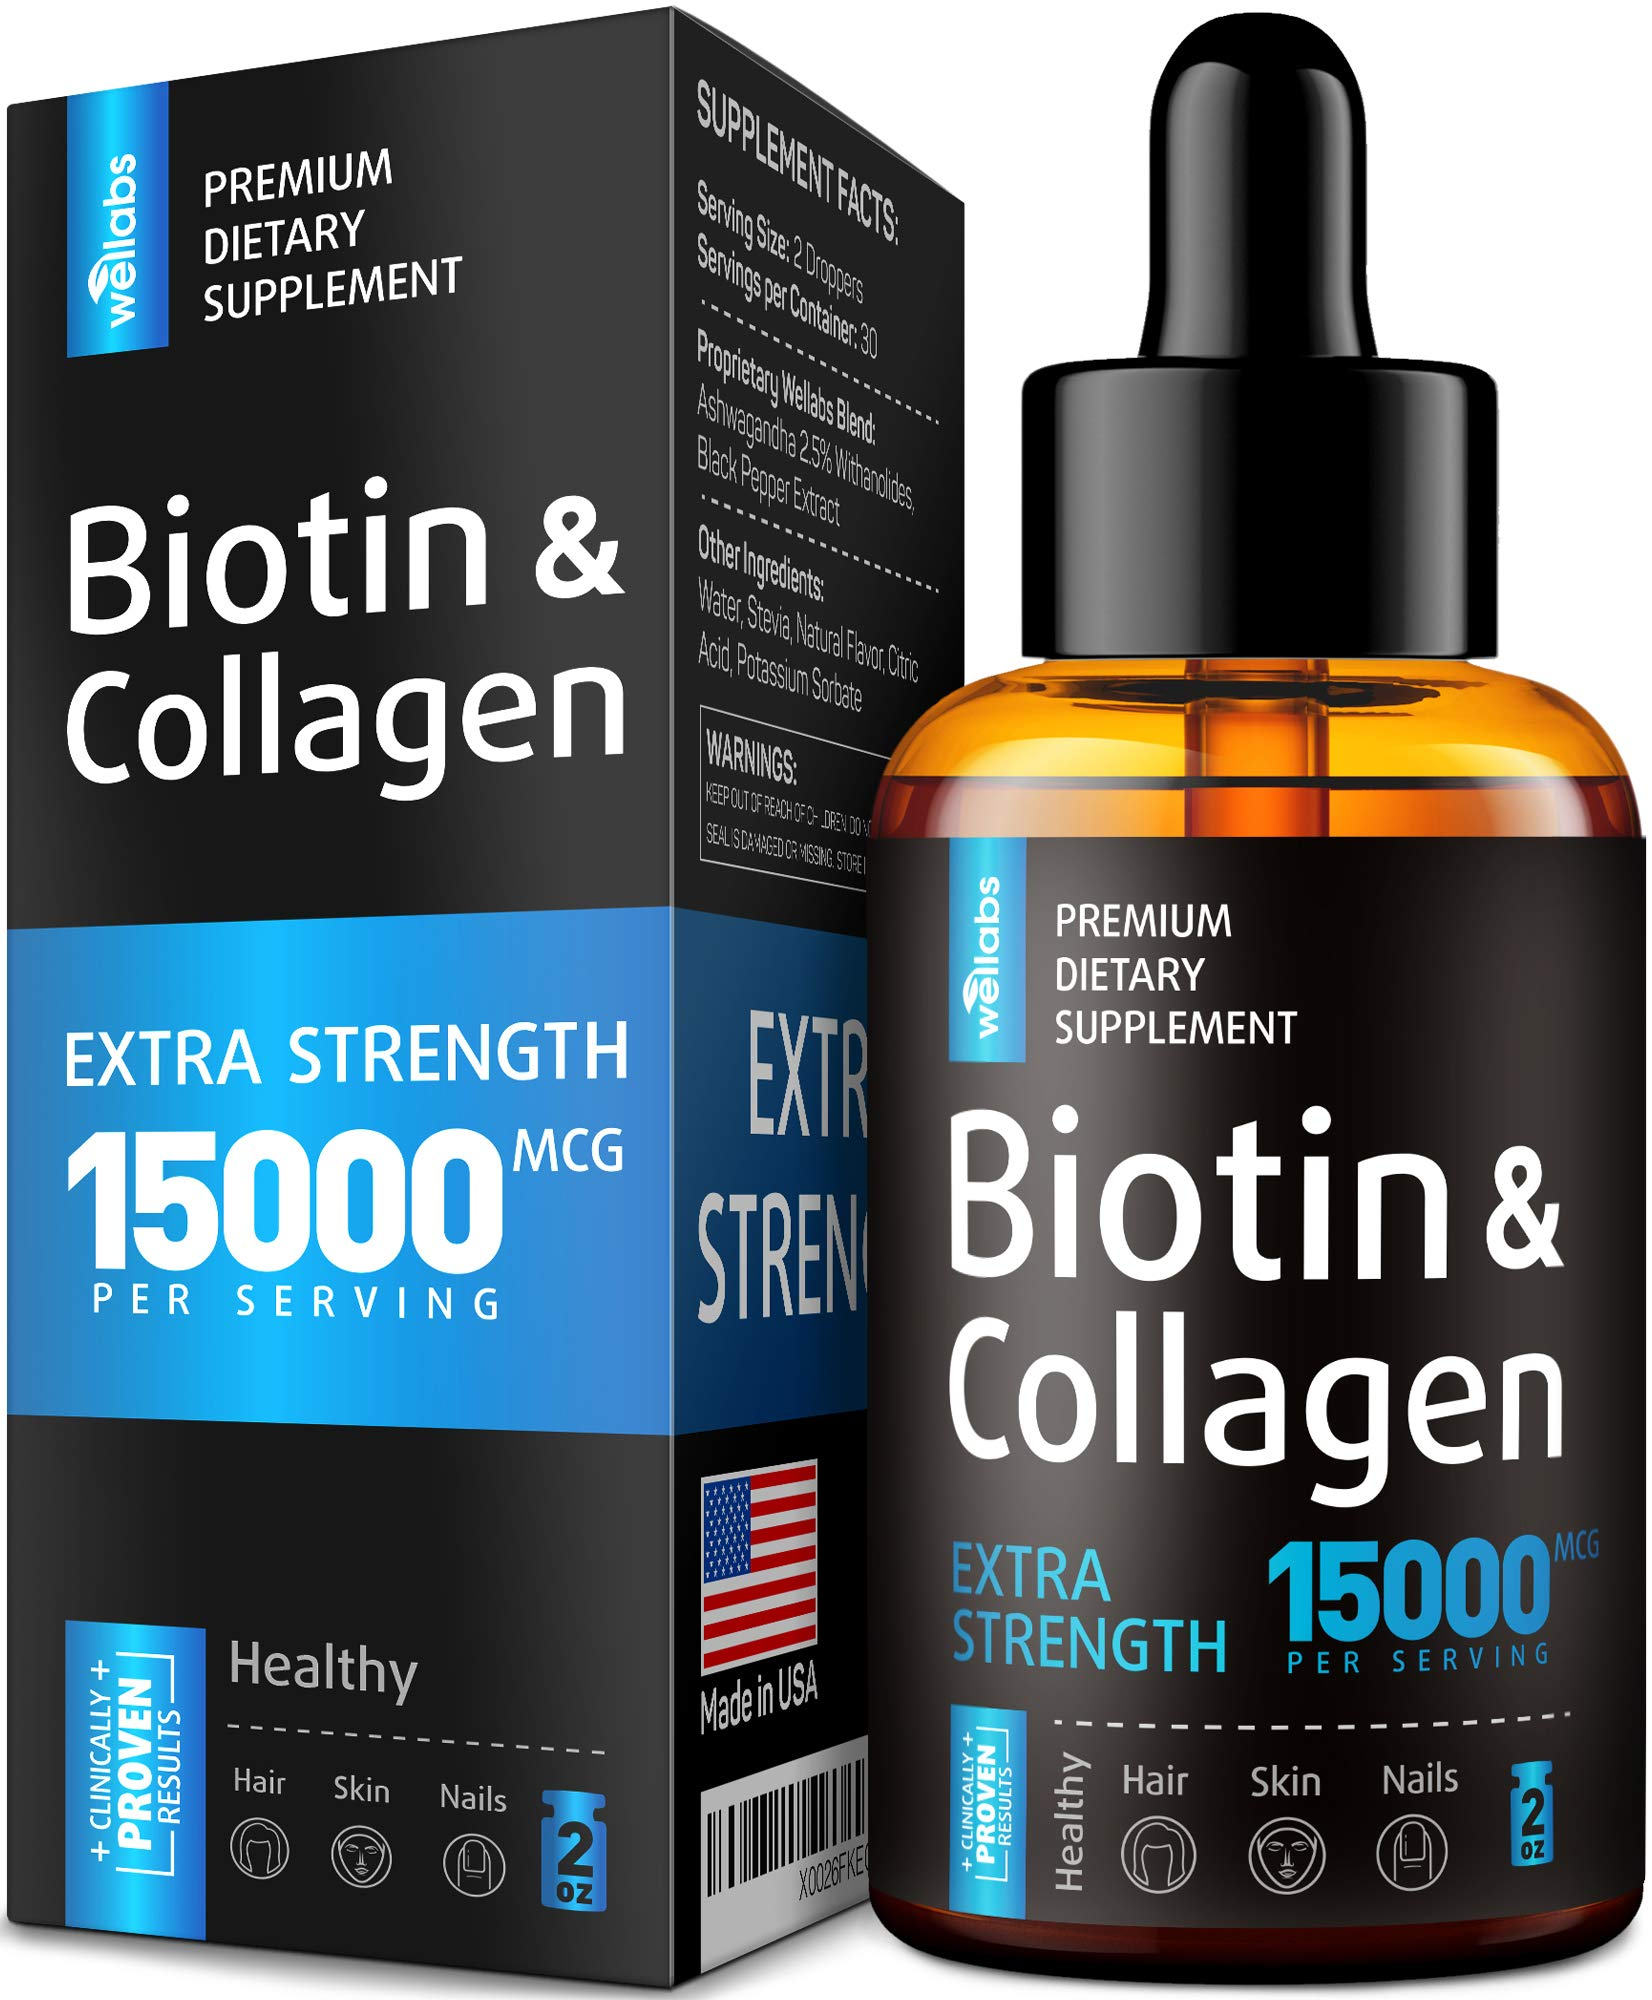 Premium Biotin & Collagen Hair Growth Drops - Potent US Made Hair Growth Product - Healthy Skin & Nails - Liquid Biotin & Collagen Supplement for Best Absorption - Perfect Hair Growth for Men & Women by Wellabs